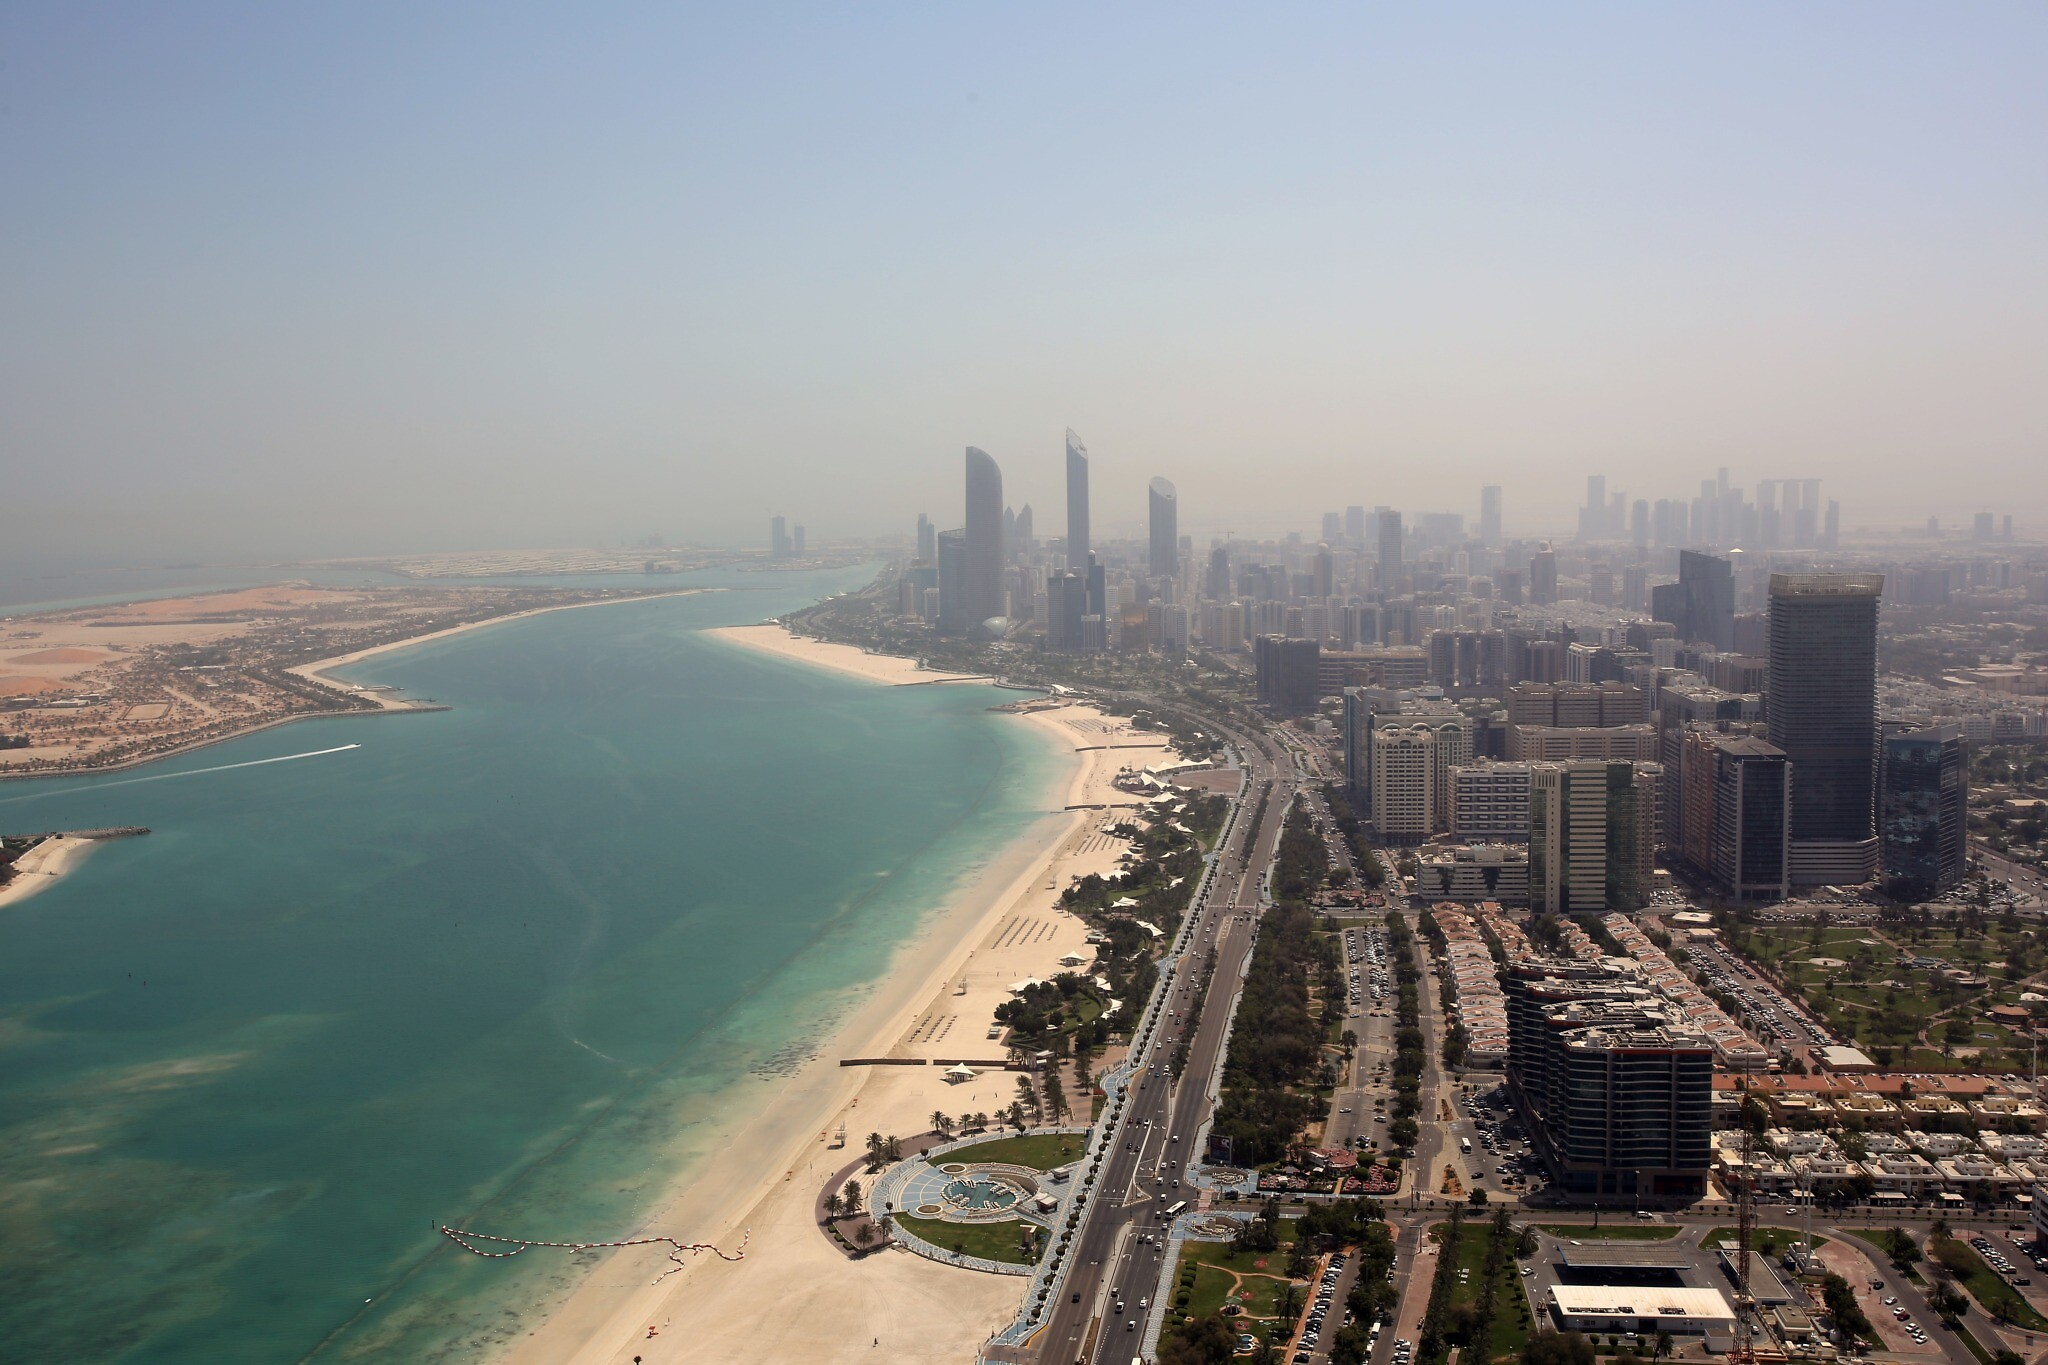 Israeli Delegation Said Headed To Uae Next Week To Move Forward On Deal The Times Of Israel